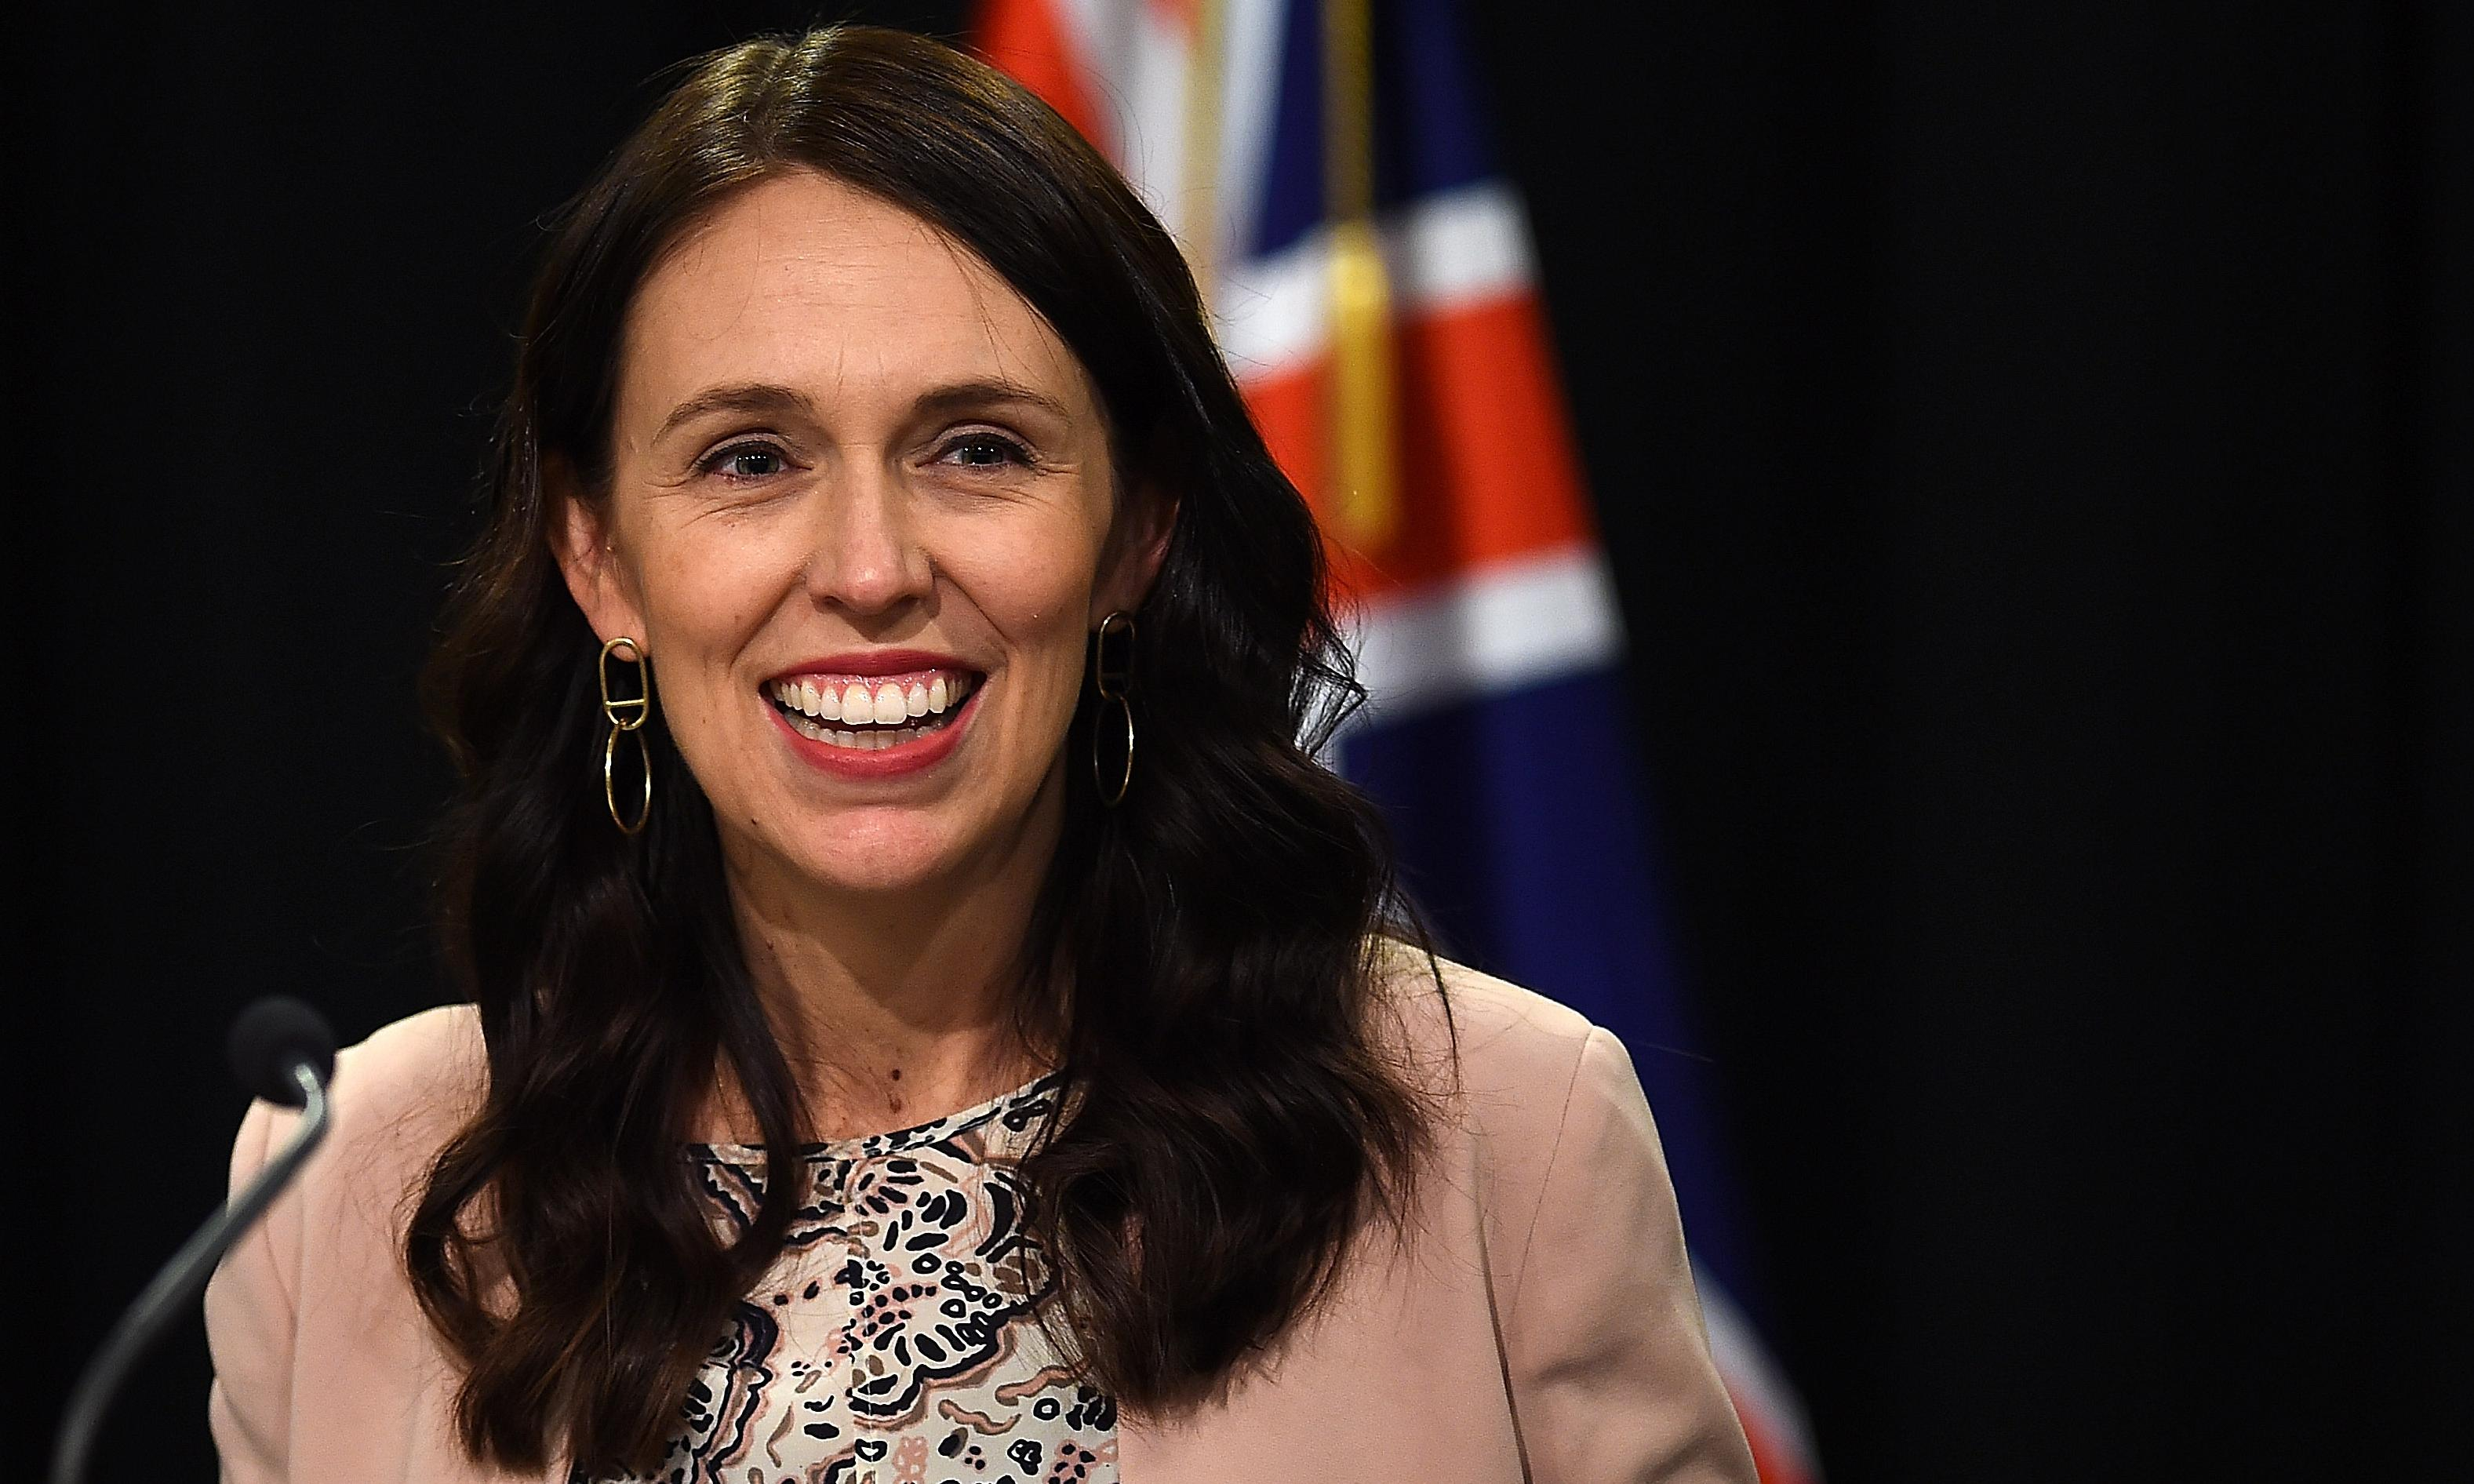 New Zealand's 'degrading' abortion ban breaches human rights, say activists